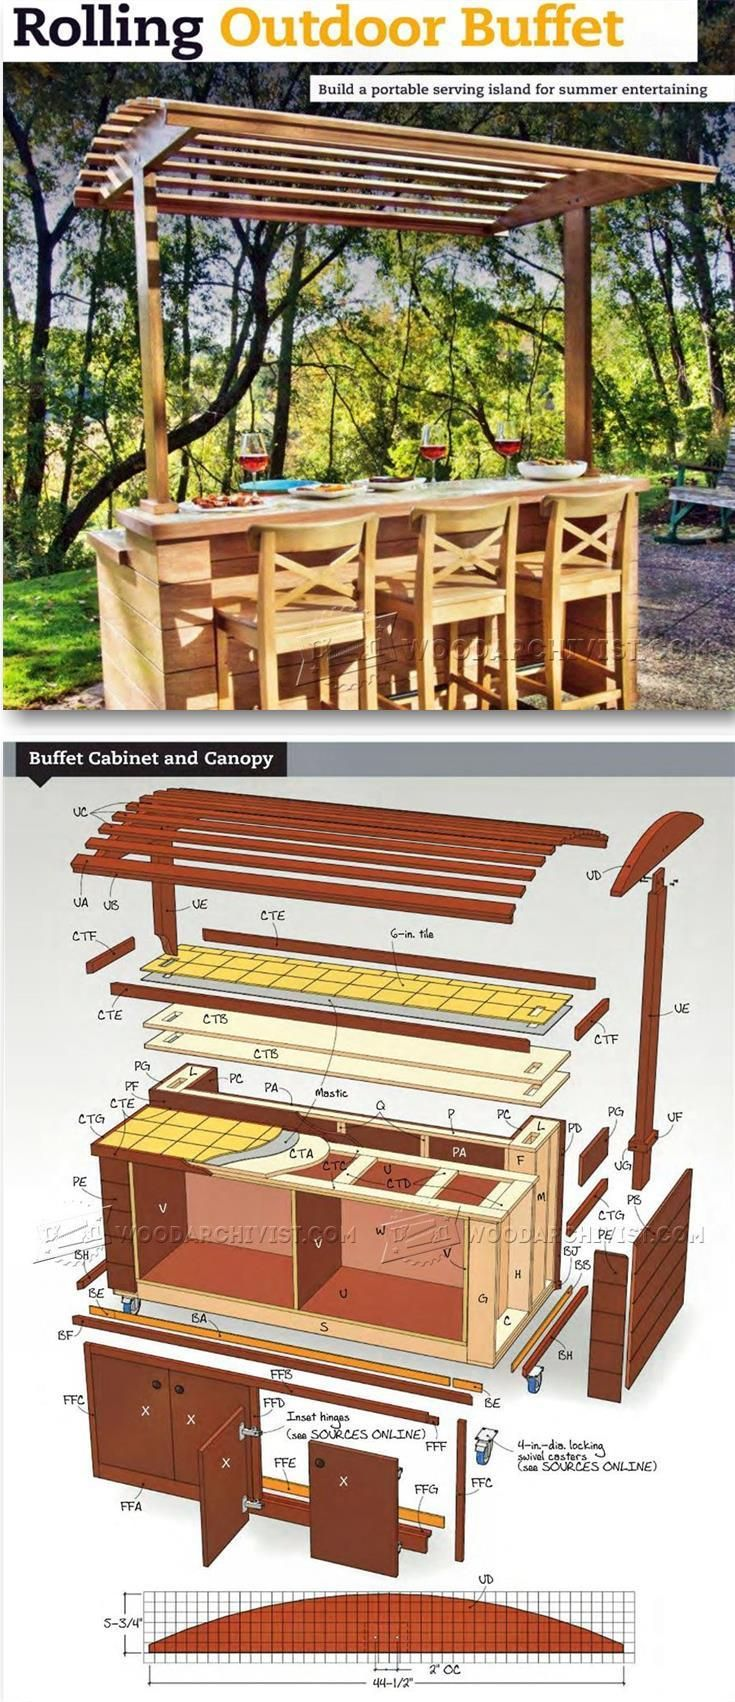 Rolling Outdoor Buffet Table Plans - Outdoor Furniture Plans & Projects | WoodArchivist.com